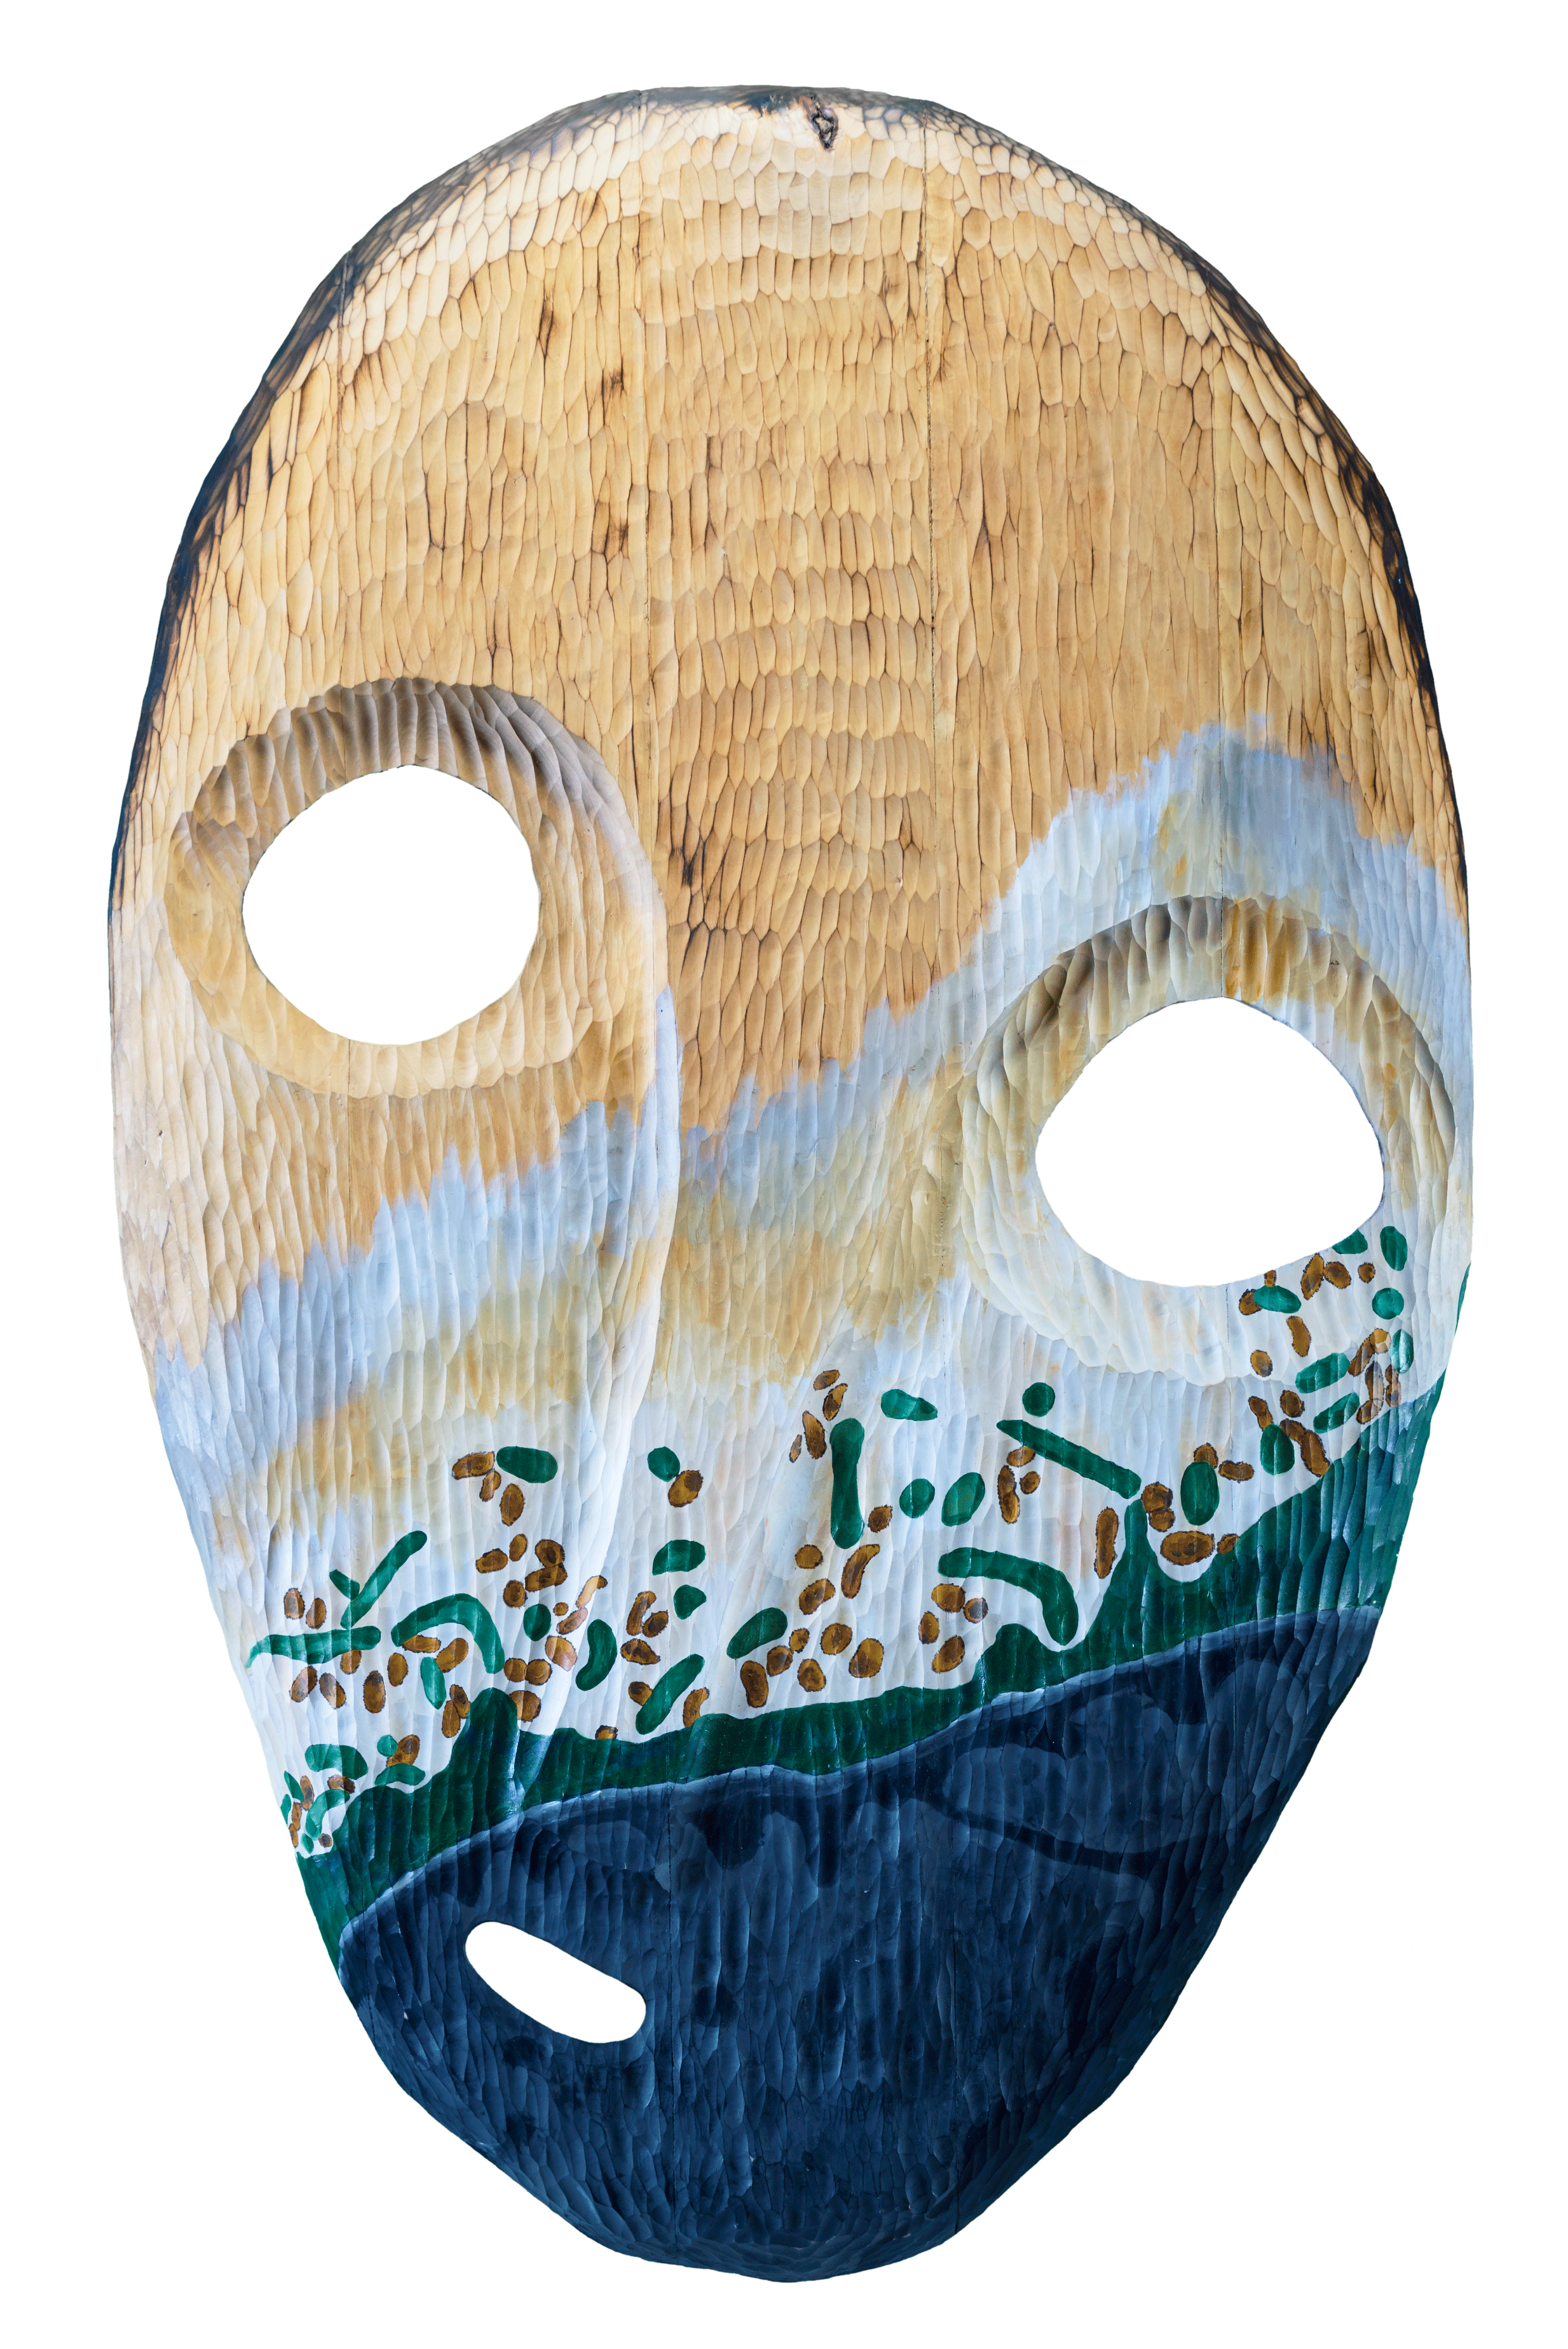 Influenza Mask frontview